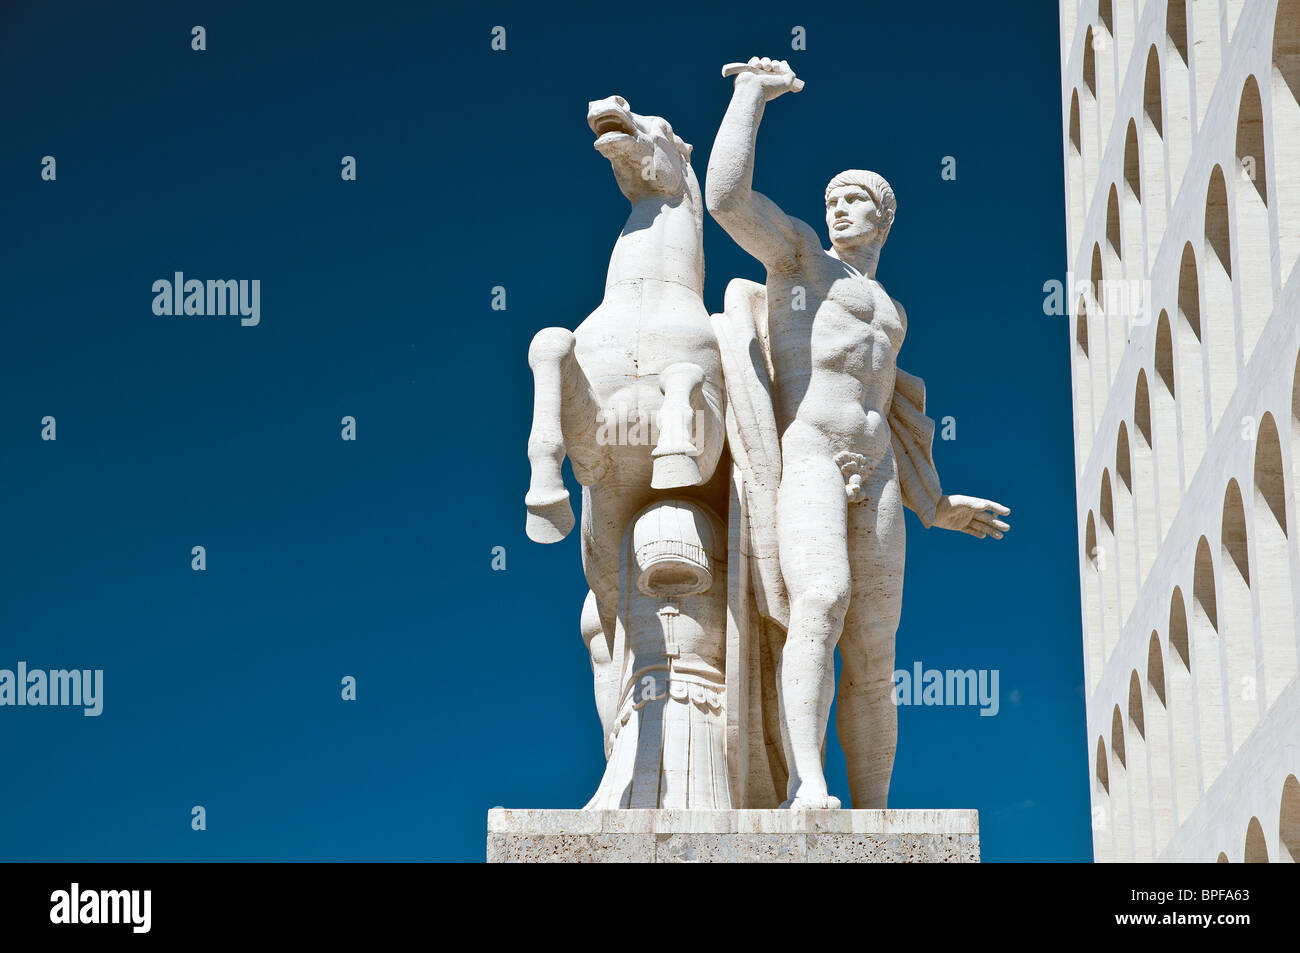 An equestrian sculptural group next to the Palazzo della Civiltà Italiana building, EUR district, Rome, Italy - Stock Image